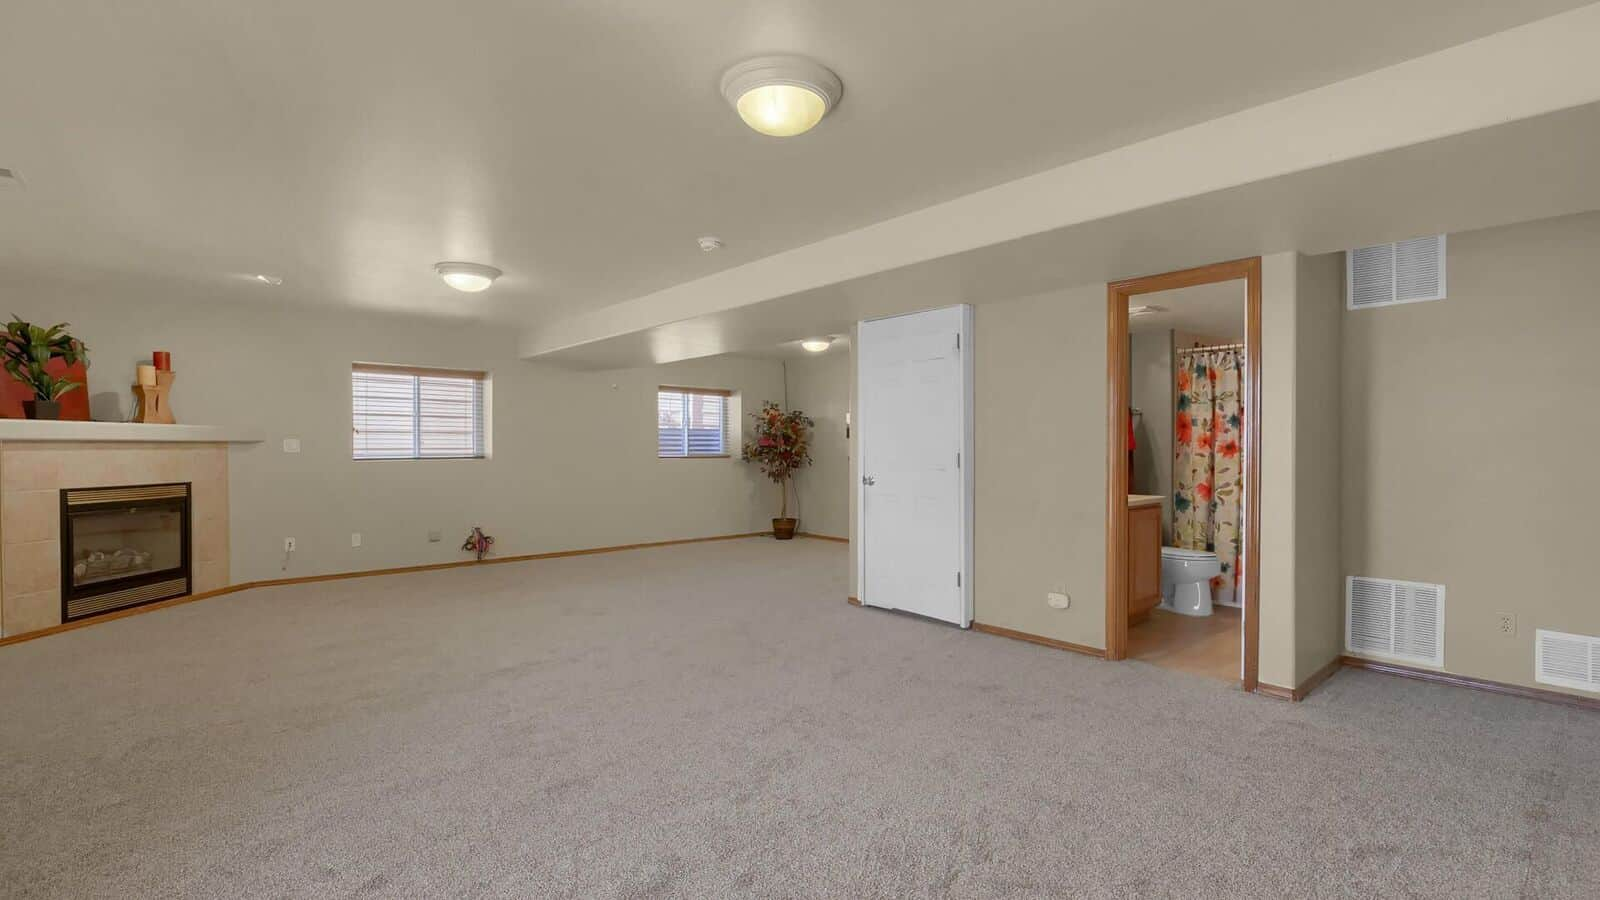 Large Open Walk-Out Basement Rec Room